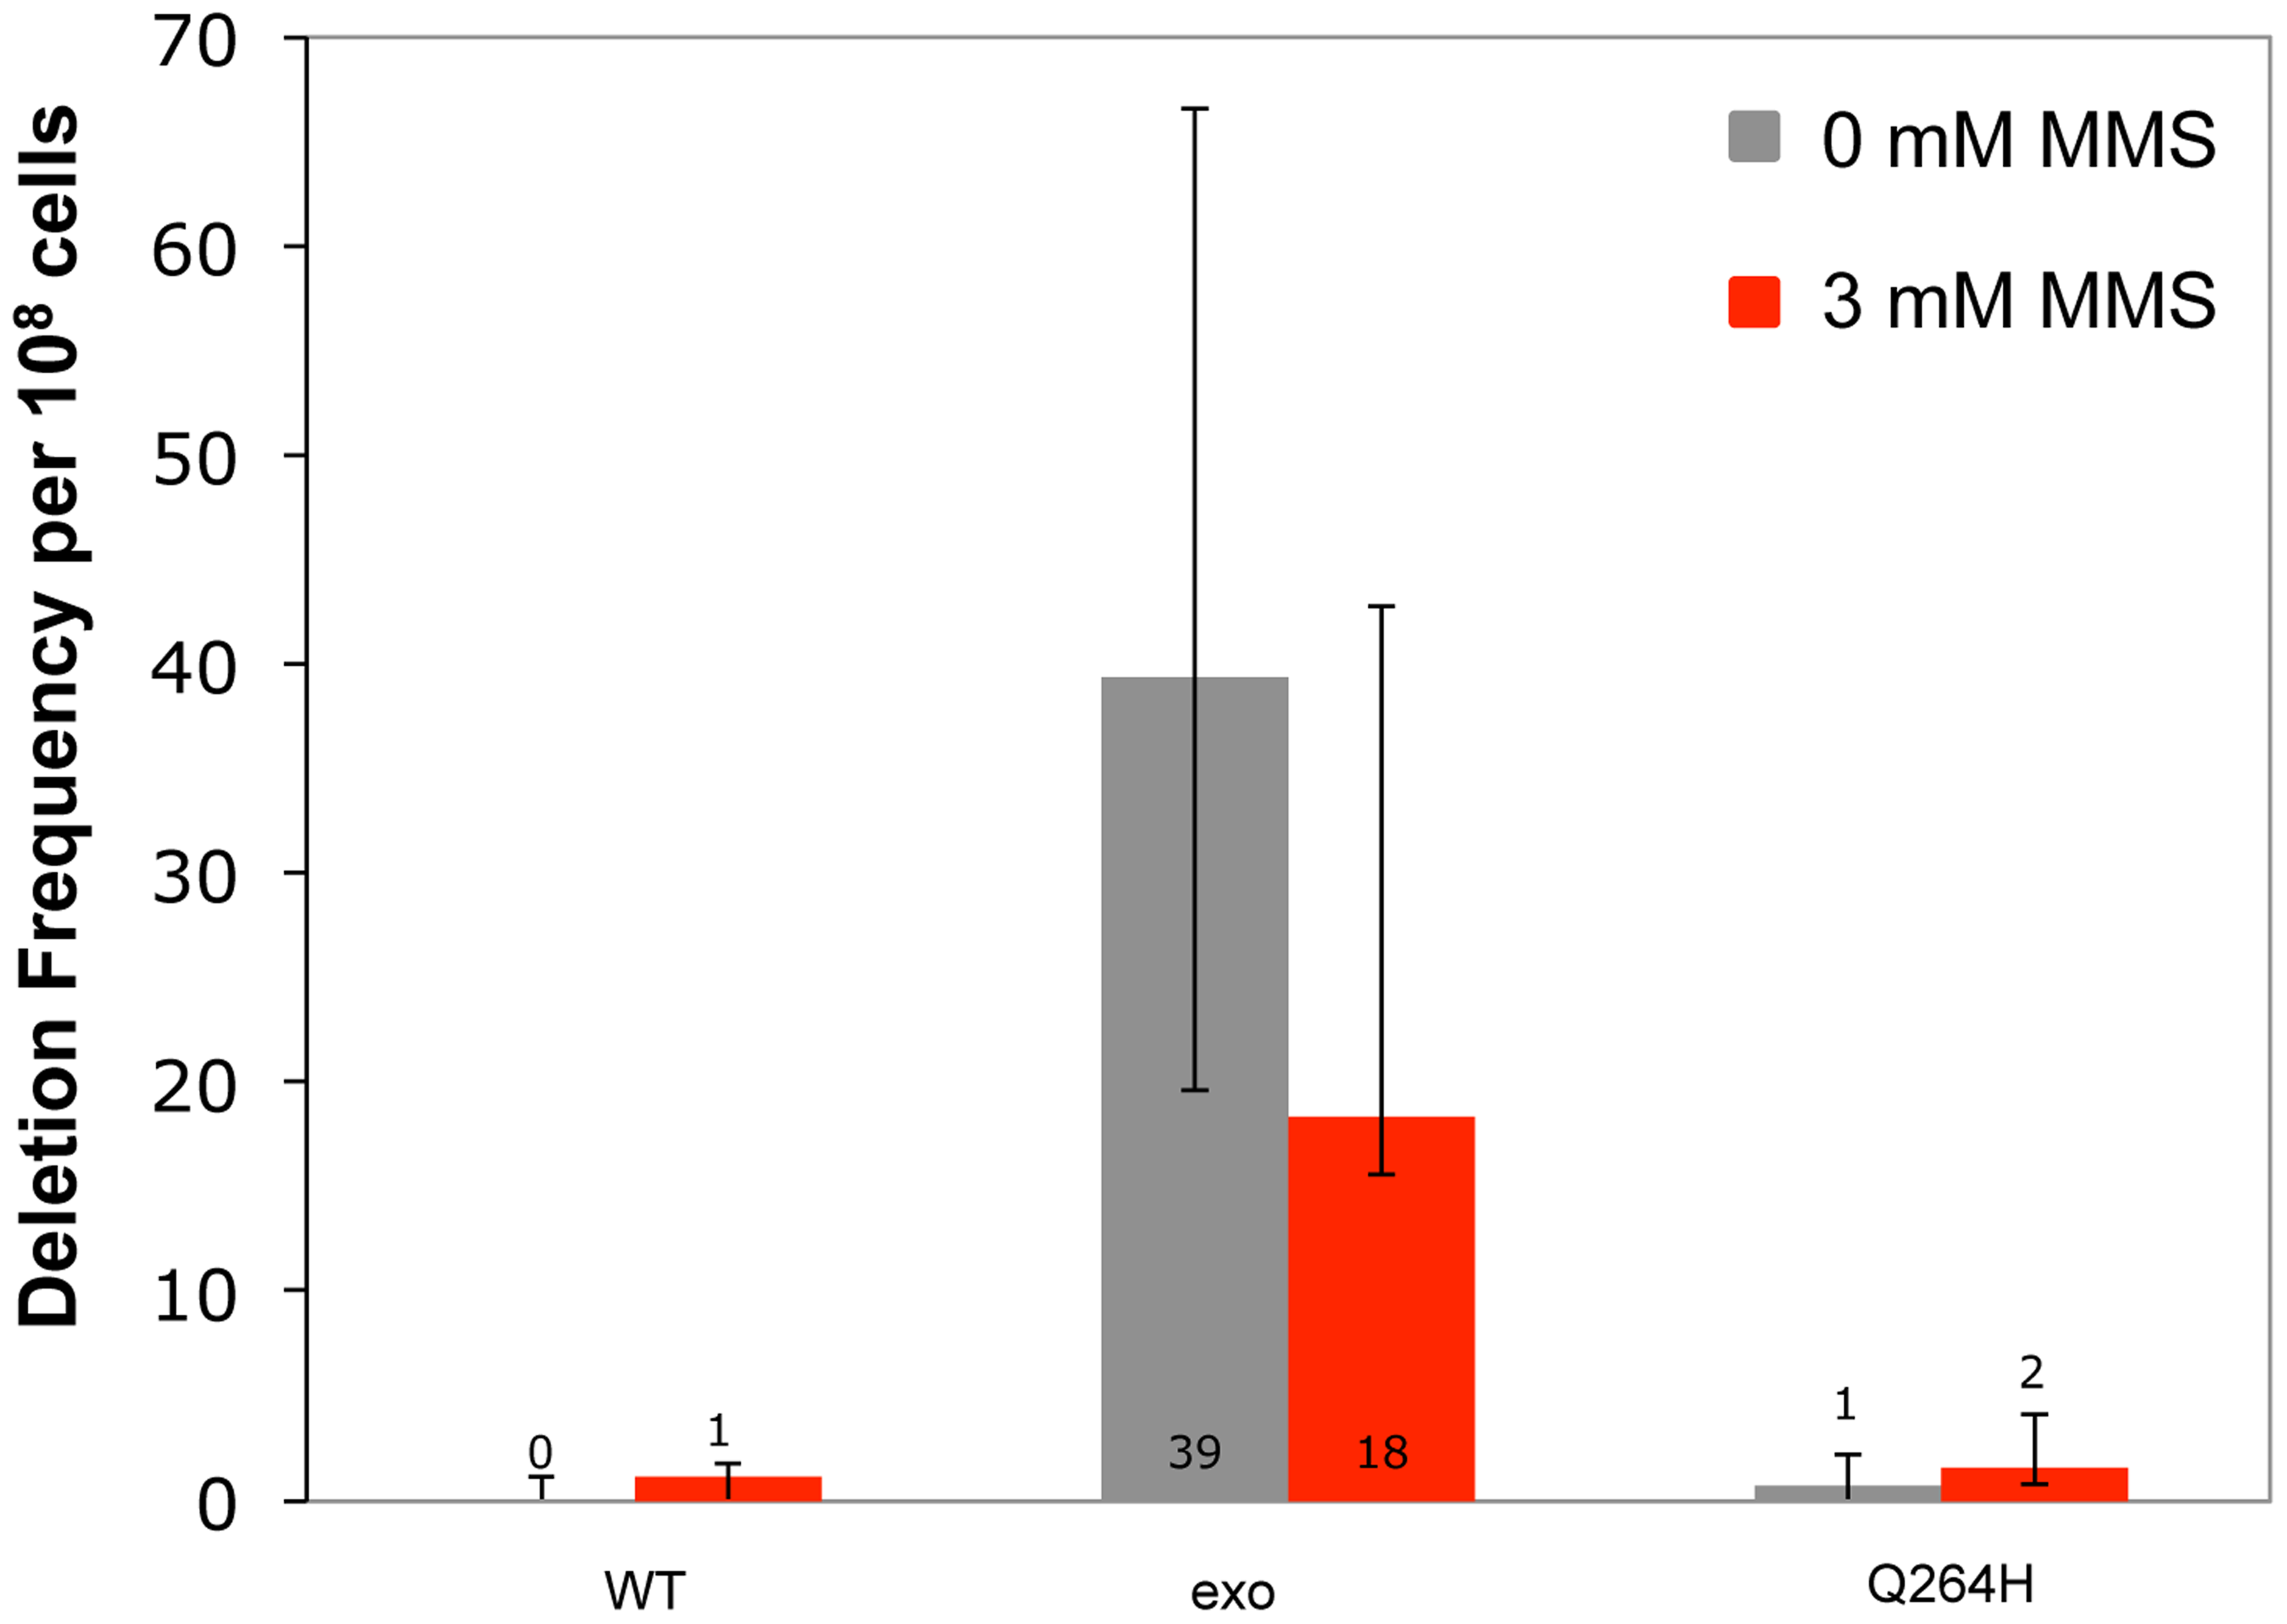 Methyl methanesulfonate exposure has no significant effect on deletion mutations between 21mer repeats.